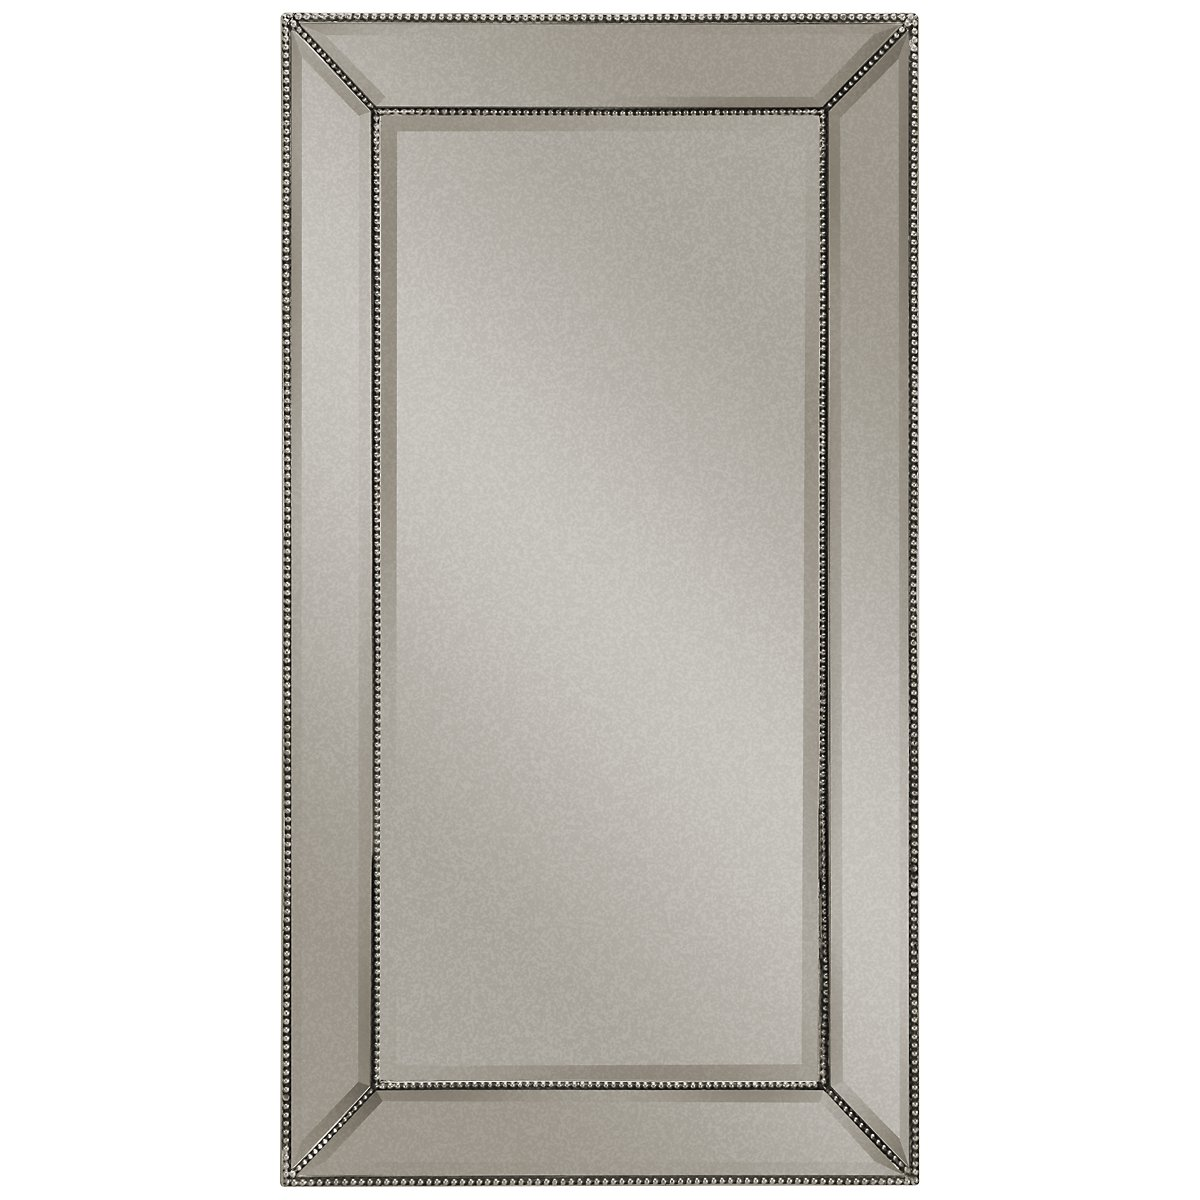 City furniture adiva silver large mirror for Big silver mirror